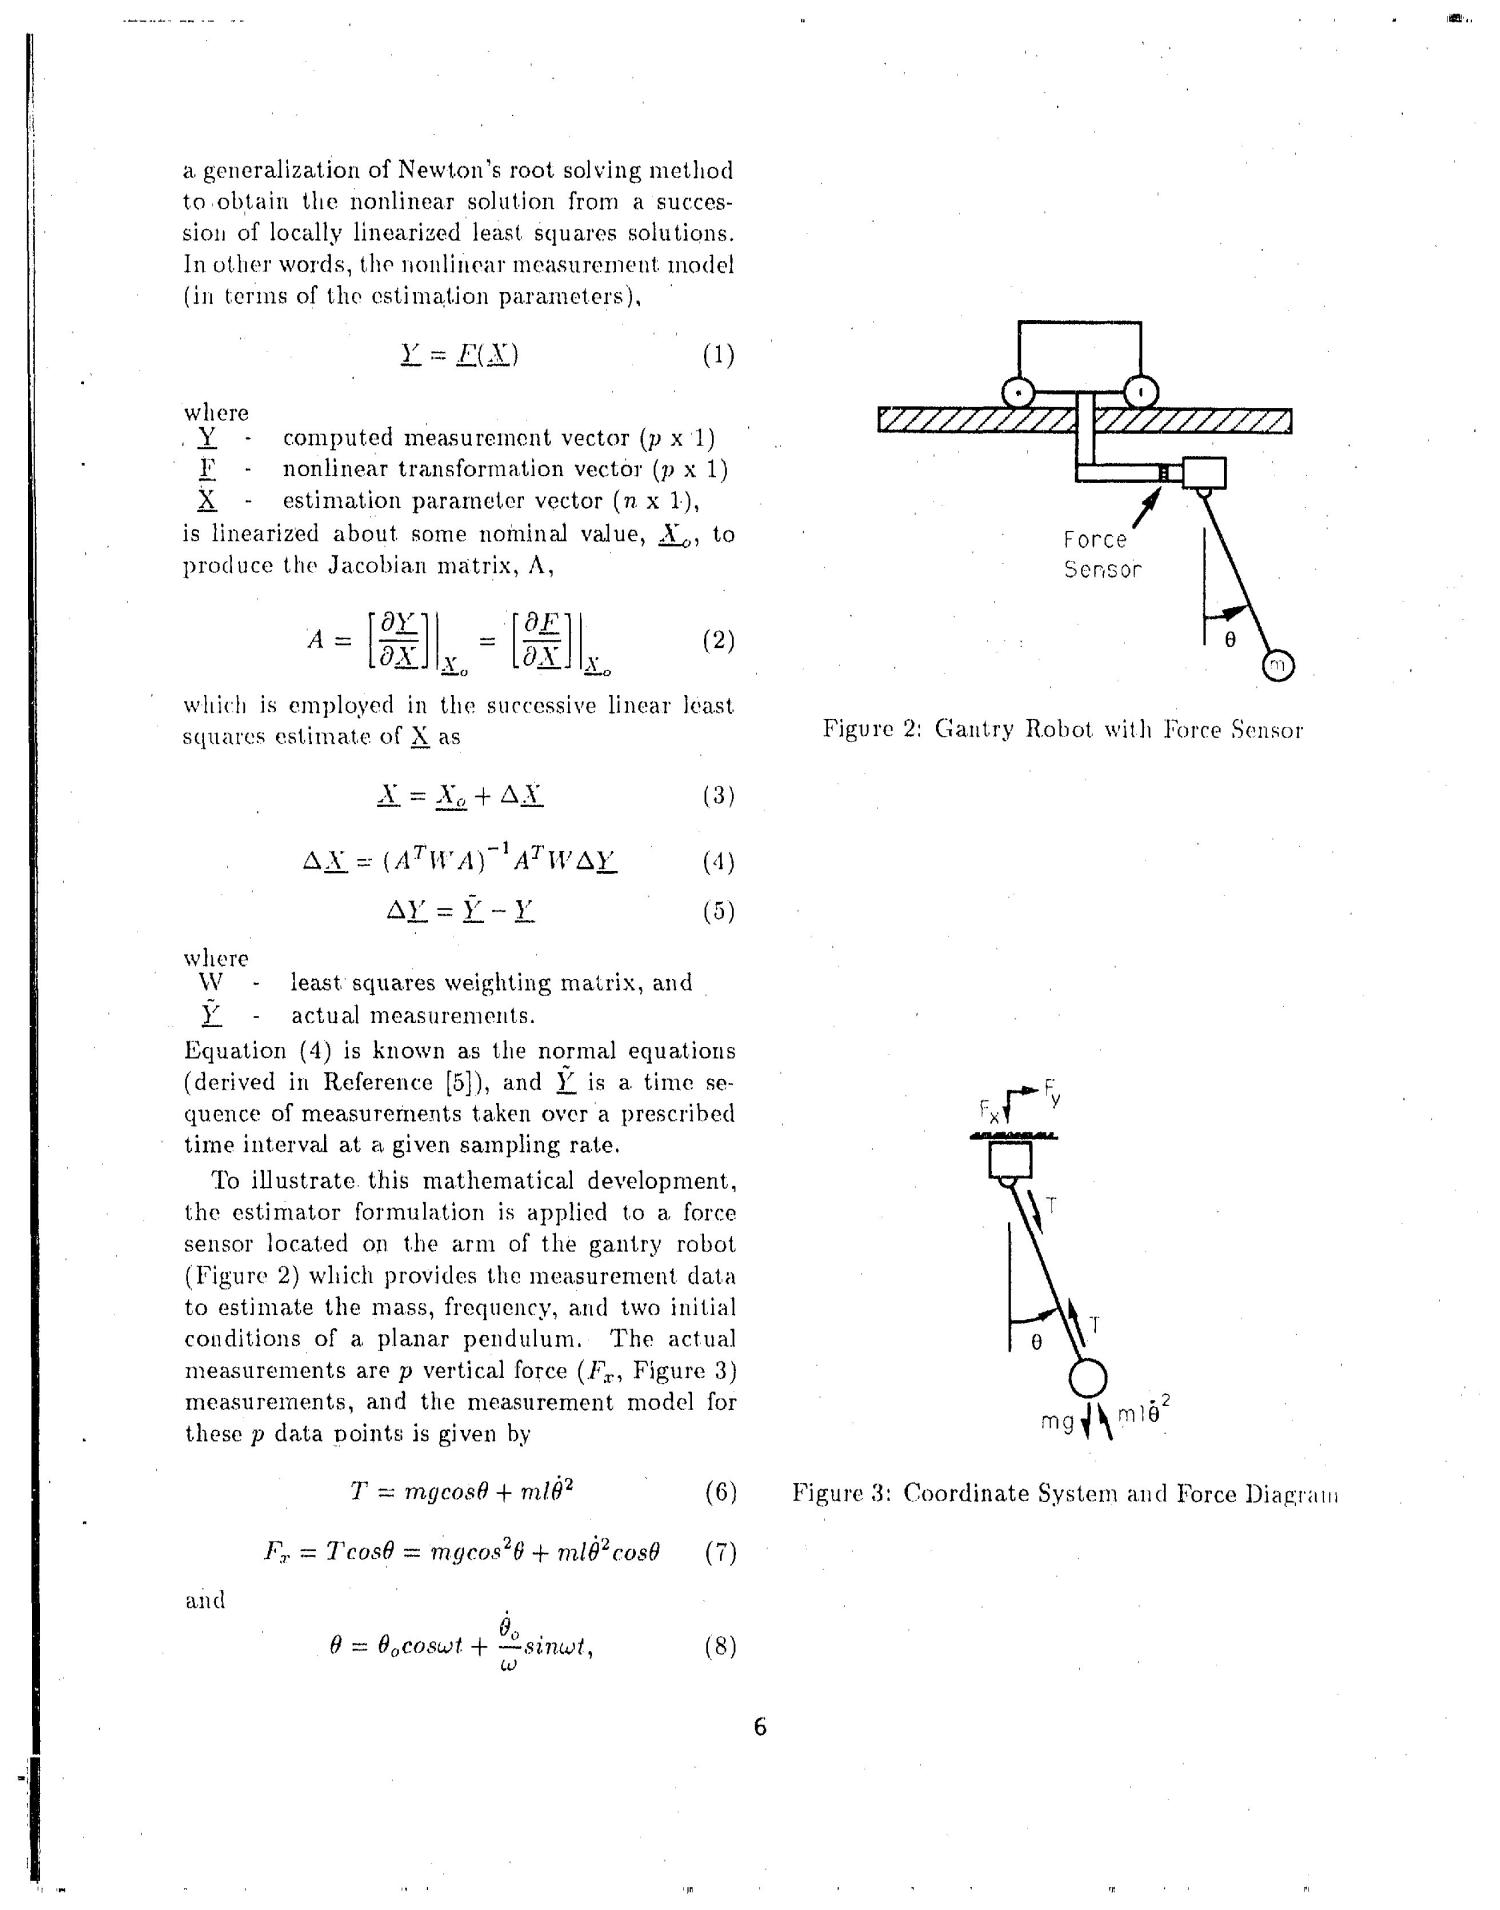 Swing-Free Movement of Simply Suspended Objects Employing Parameter Estimation                                                                                                      [Sequence #]: 4 of 10